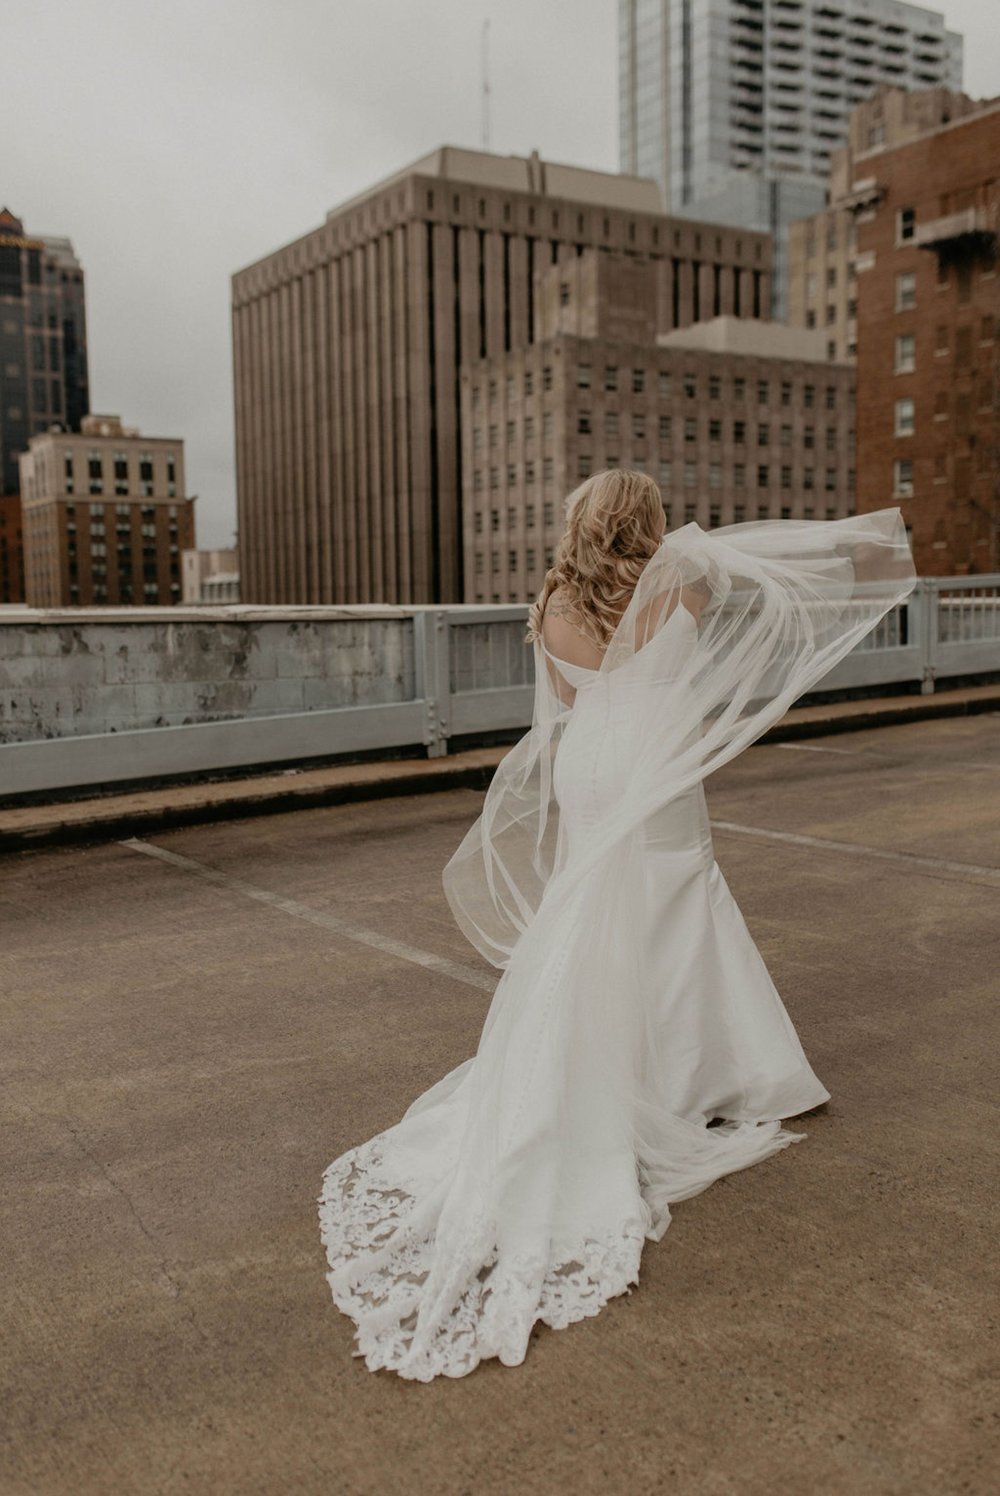 Downtown Bride portraits on top of a parking garage with the skyline in the background - Bride playing with her noontothemoon bridal cape - Bride in an Allure Bridals Mermaid Gown - Burgundy Bridesmaids dresses by davids bridal Matt Smarsh and Johanna Dye - suites by the black tux - Raleigh North Carolina Urban Edgy Downtown Wedding - suits by the black tux